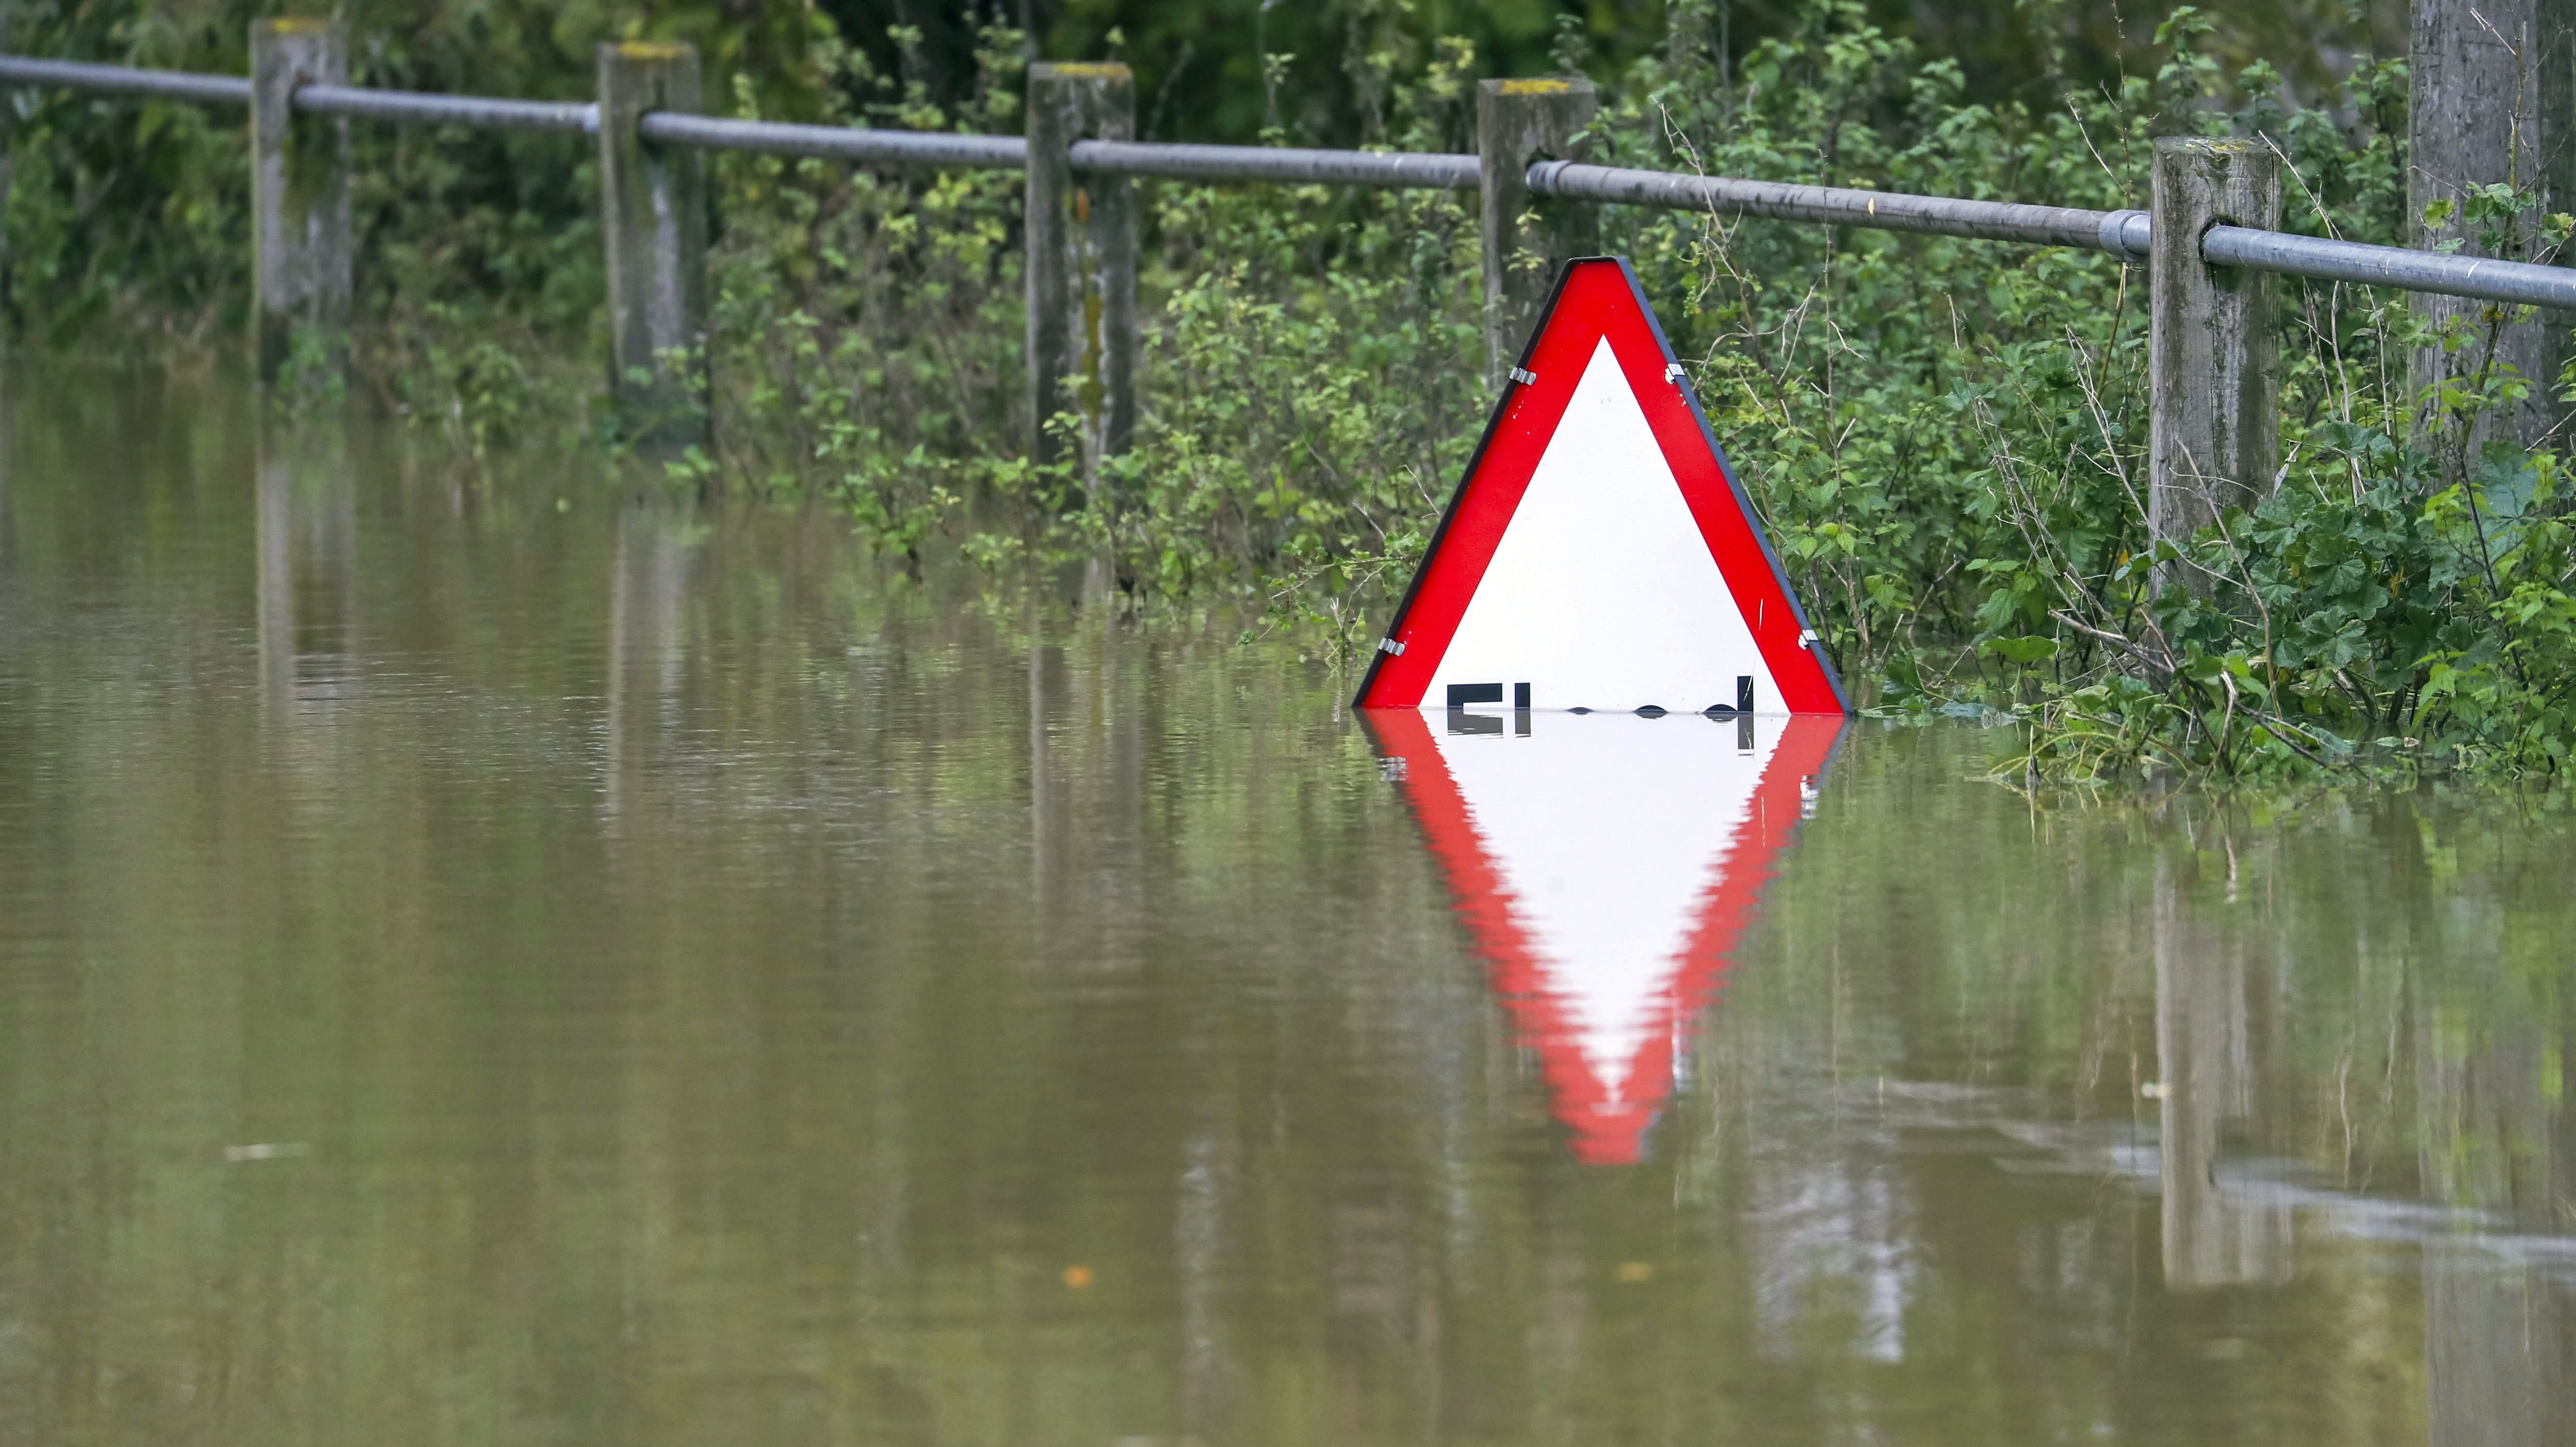 'It's not looking as bad' – weather prospects improve for soaked communities